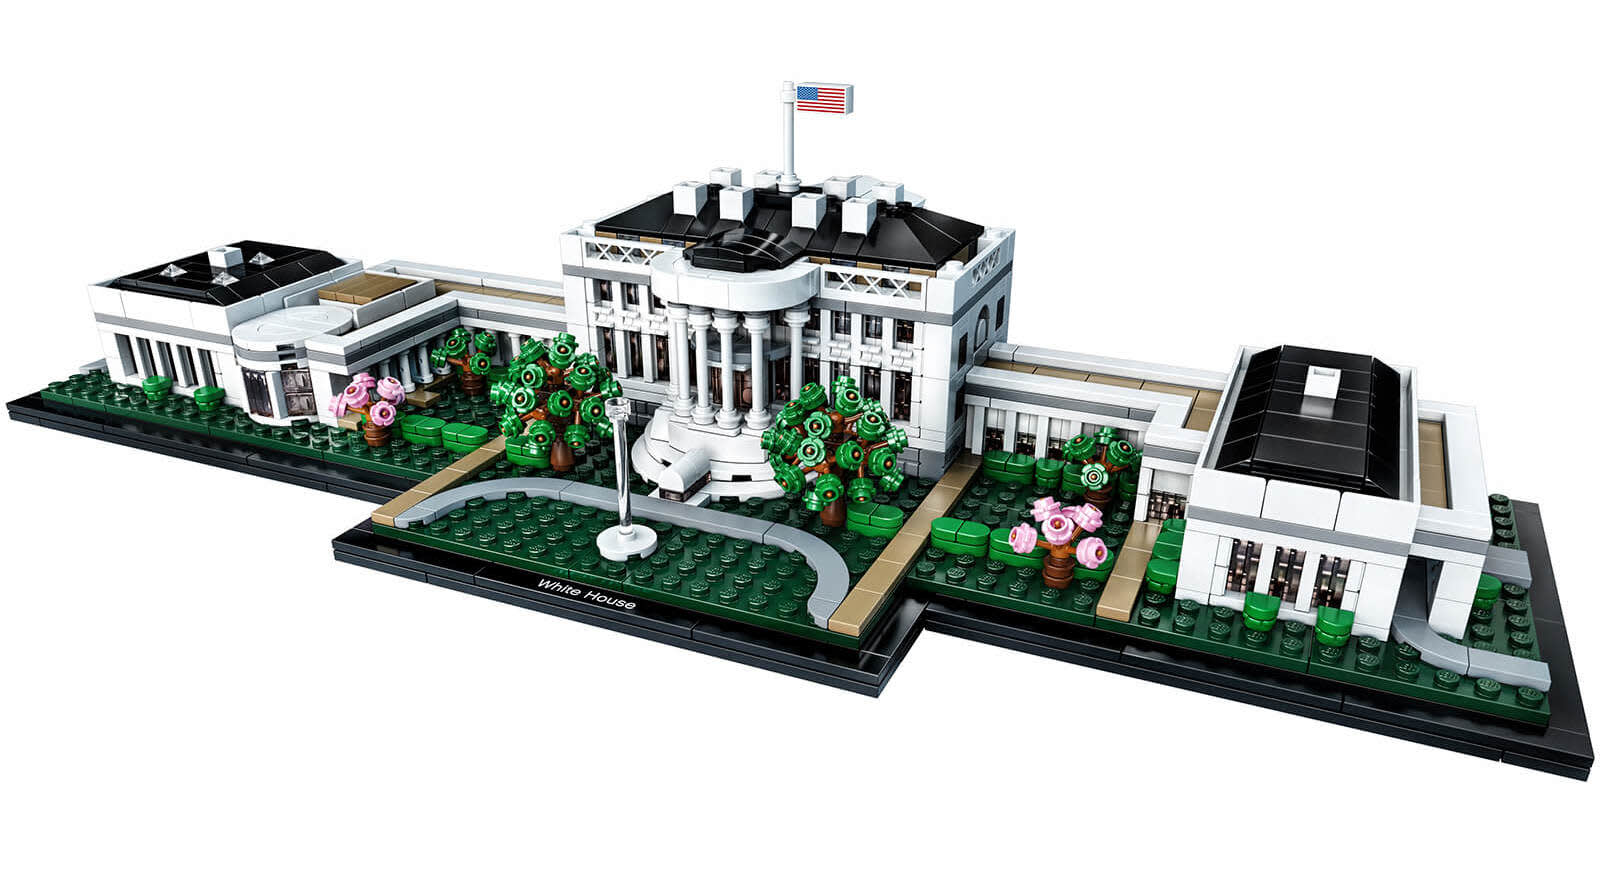 LEGO Architecture: The White House